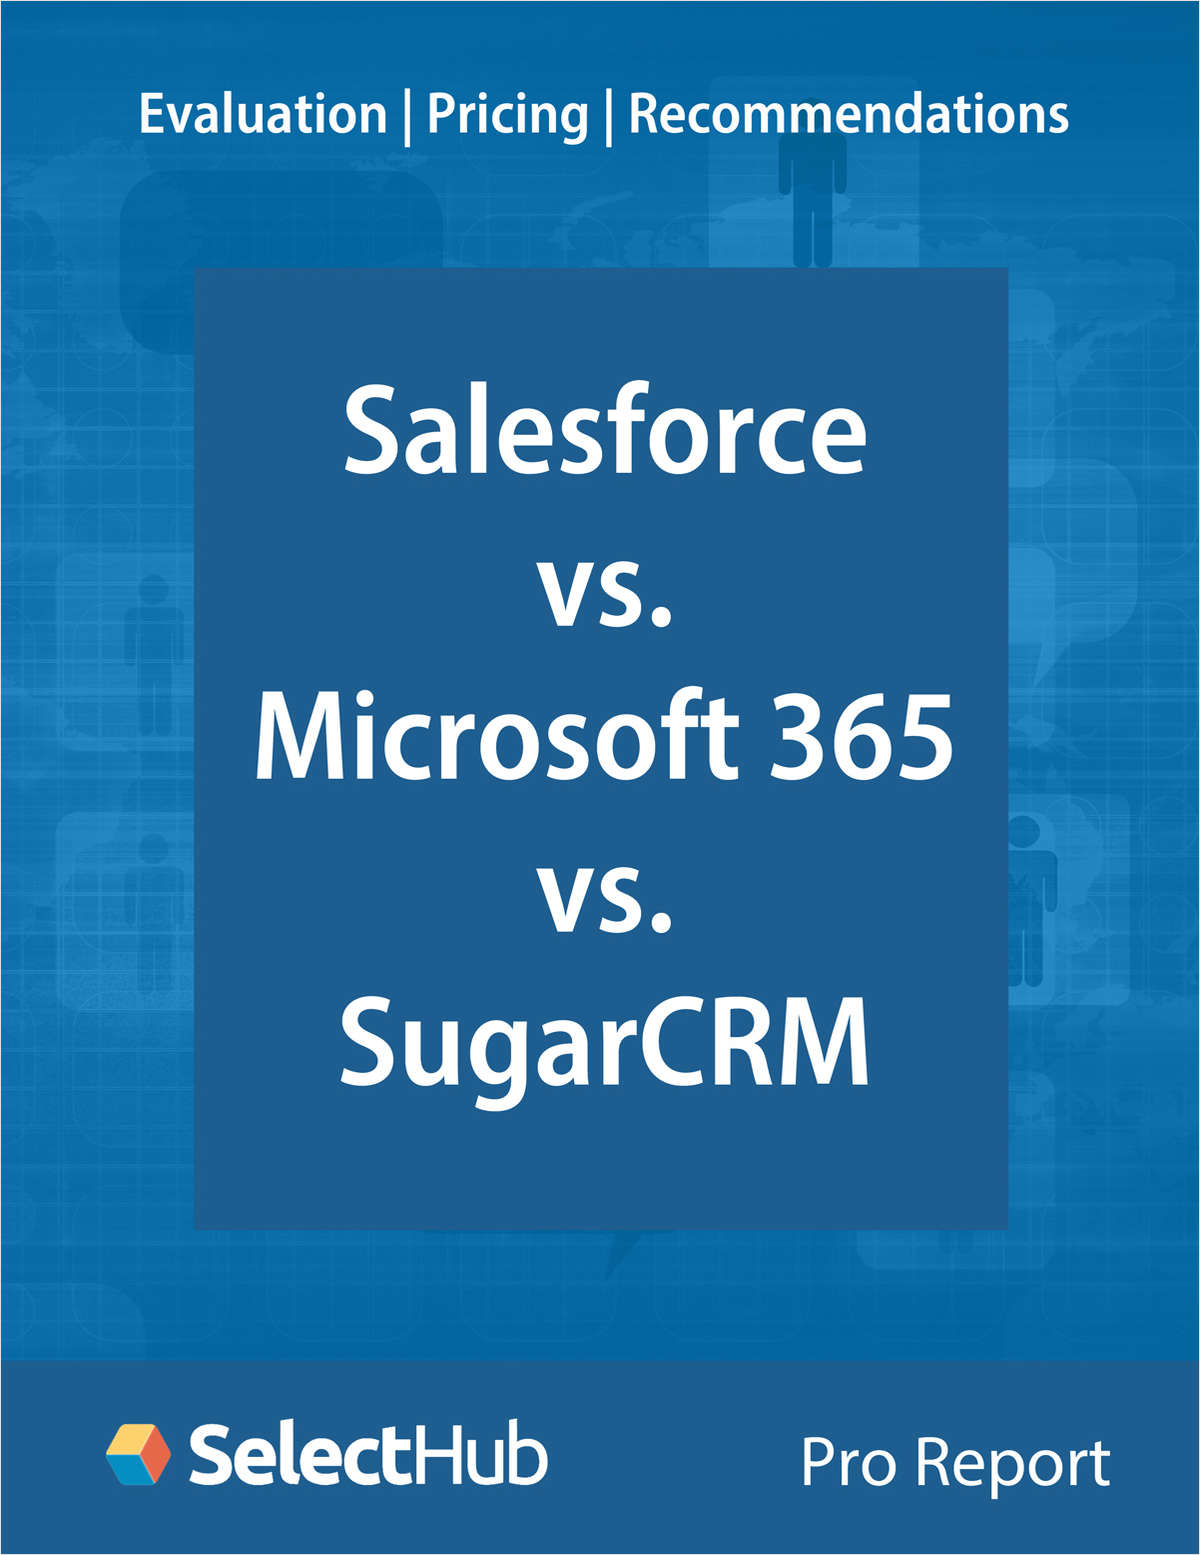 Salesforce vs. Microsoft 365 vs. SugarCRM―Expert Evaluations, Pricing & Recommendations